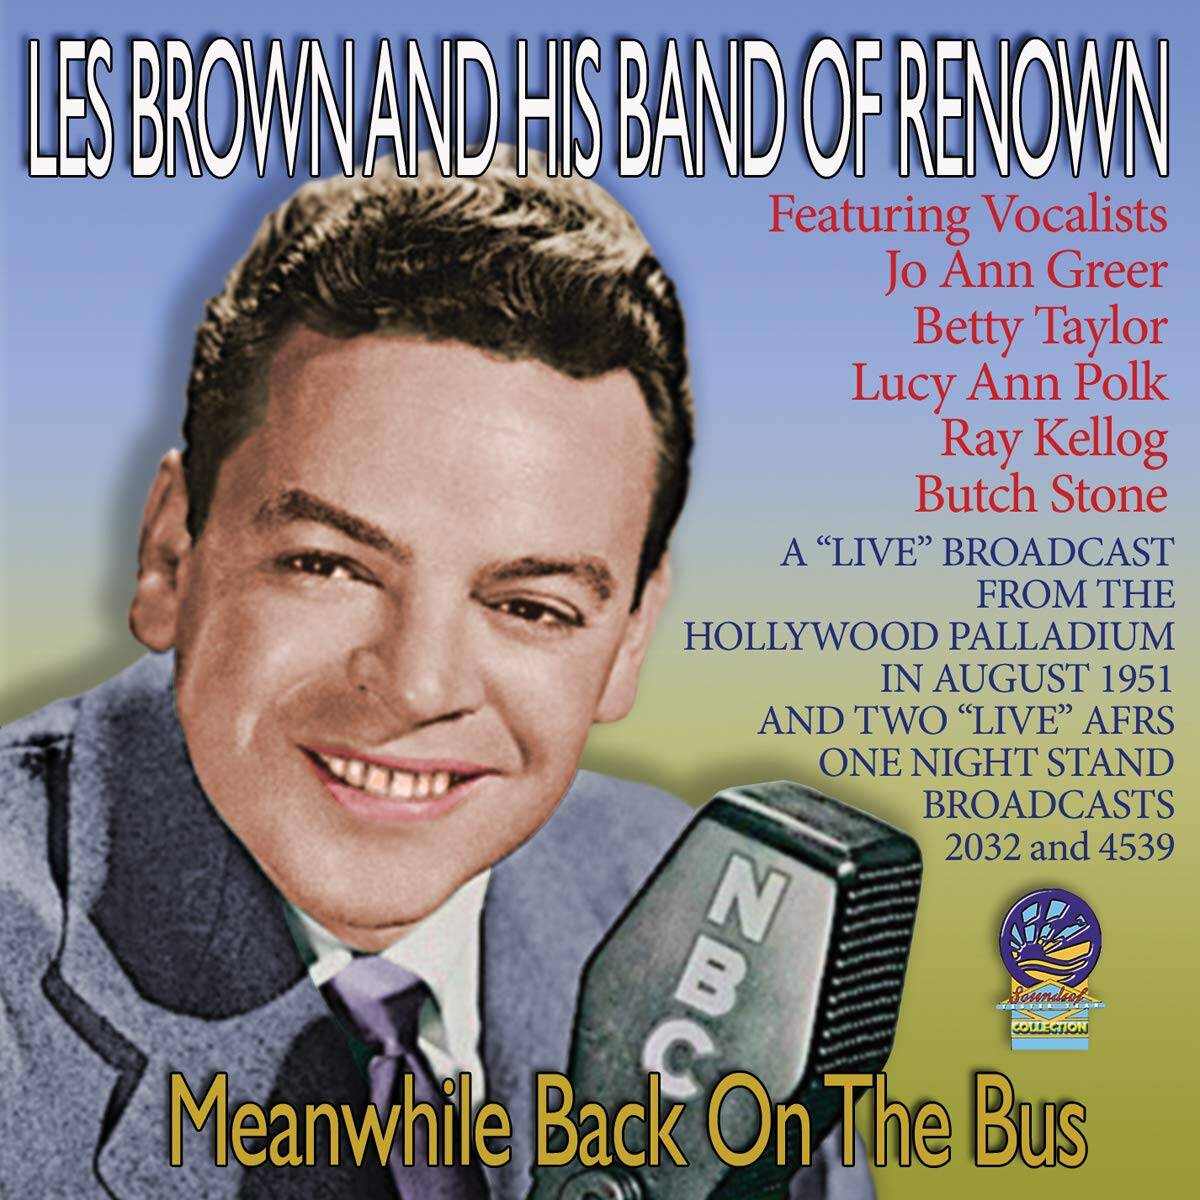 Les Brown Meanwhile Back on the Bus